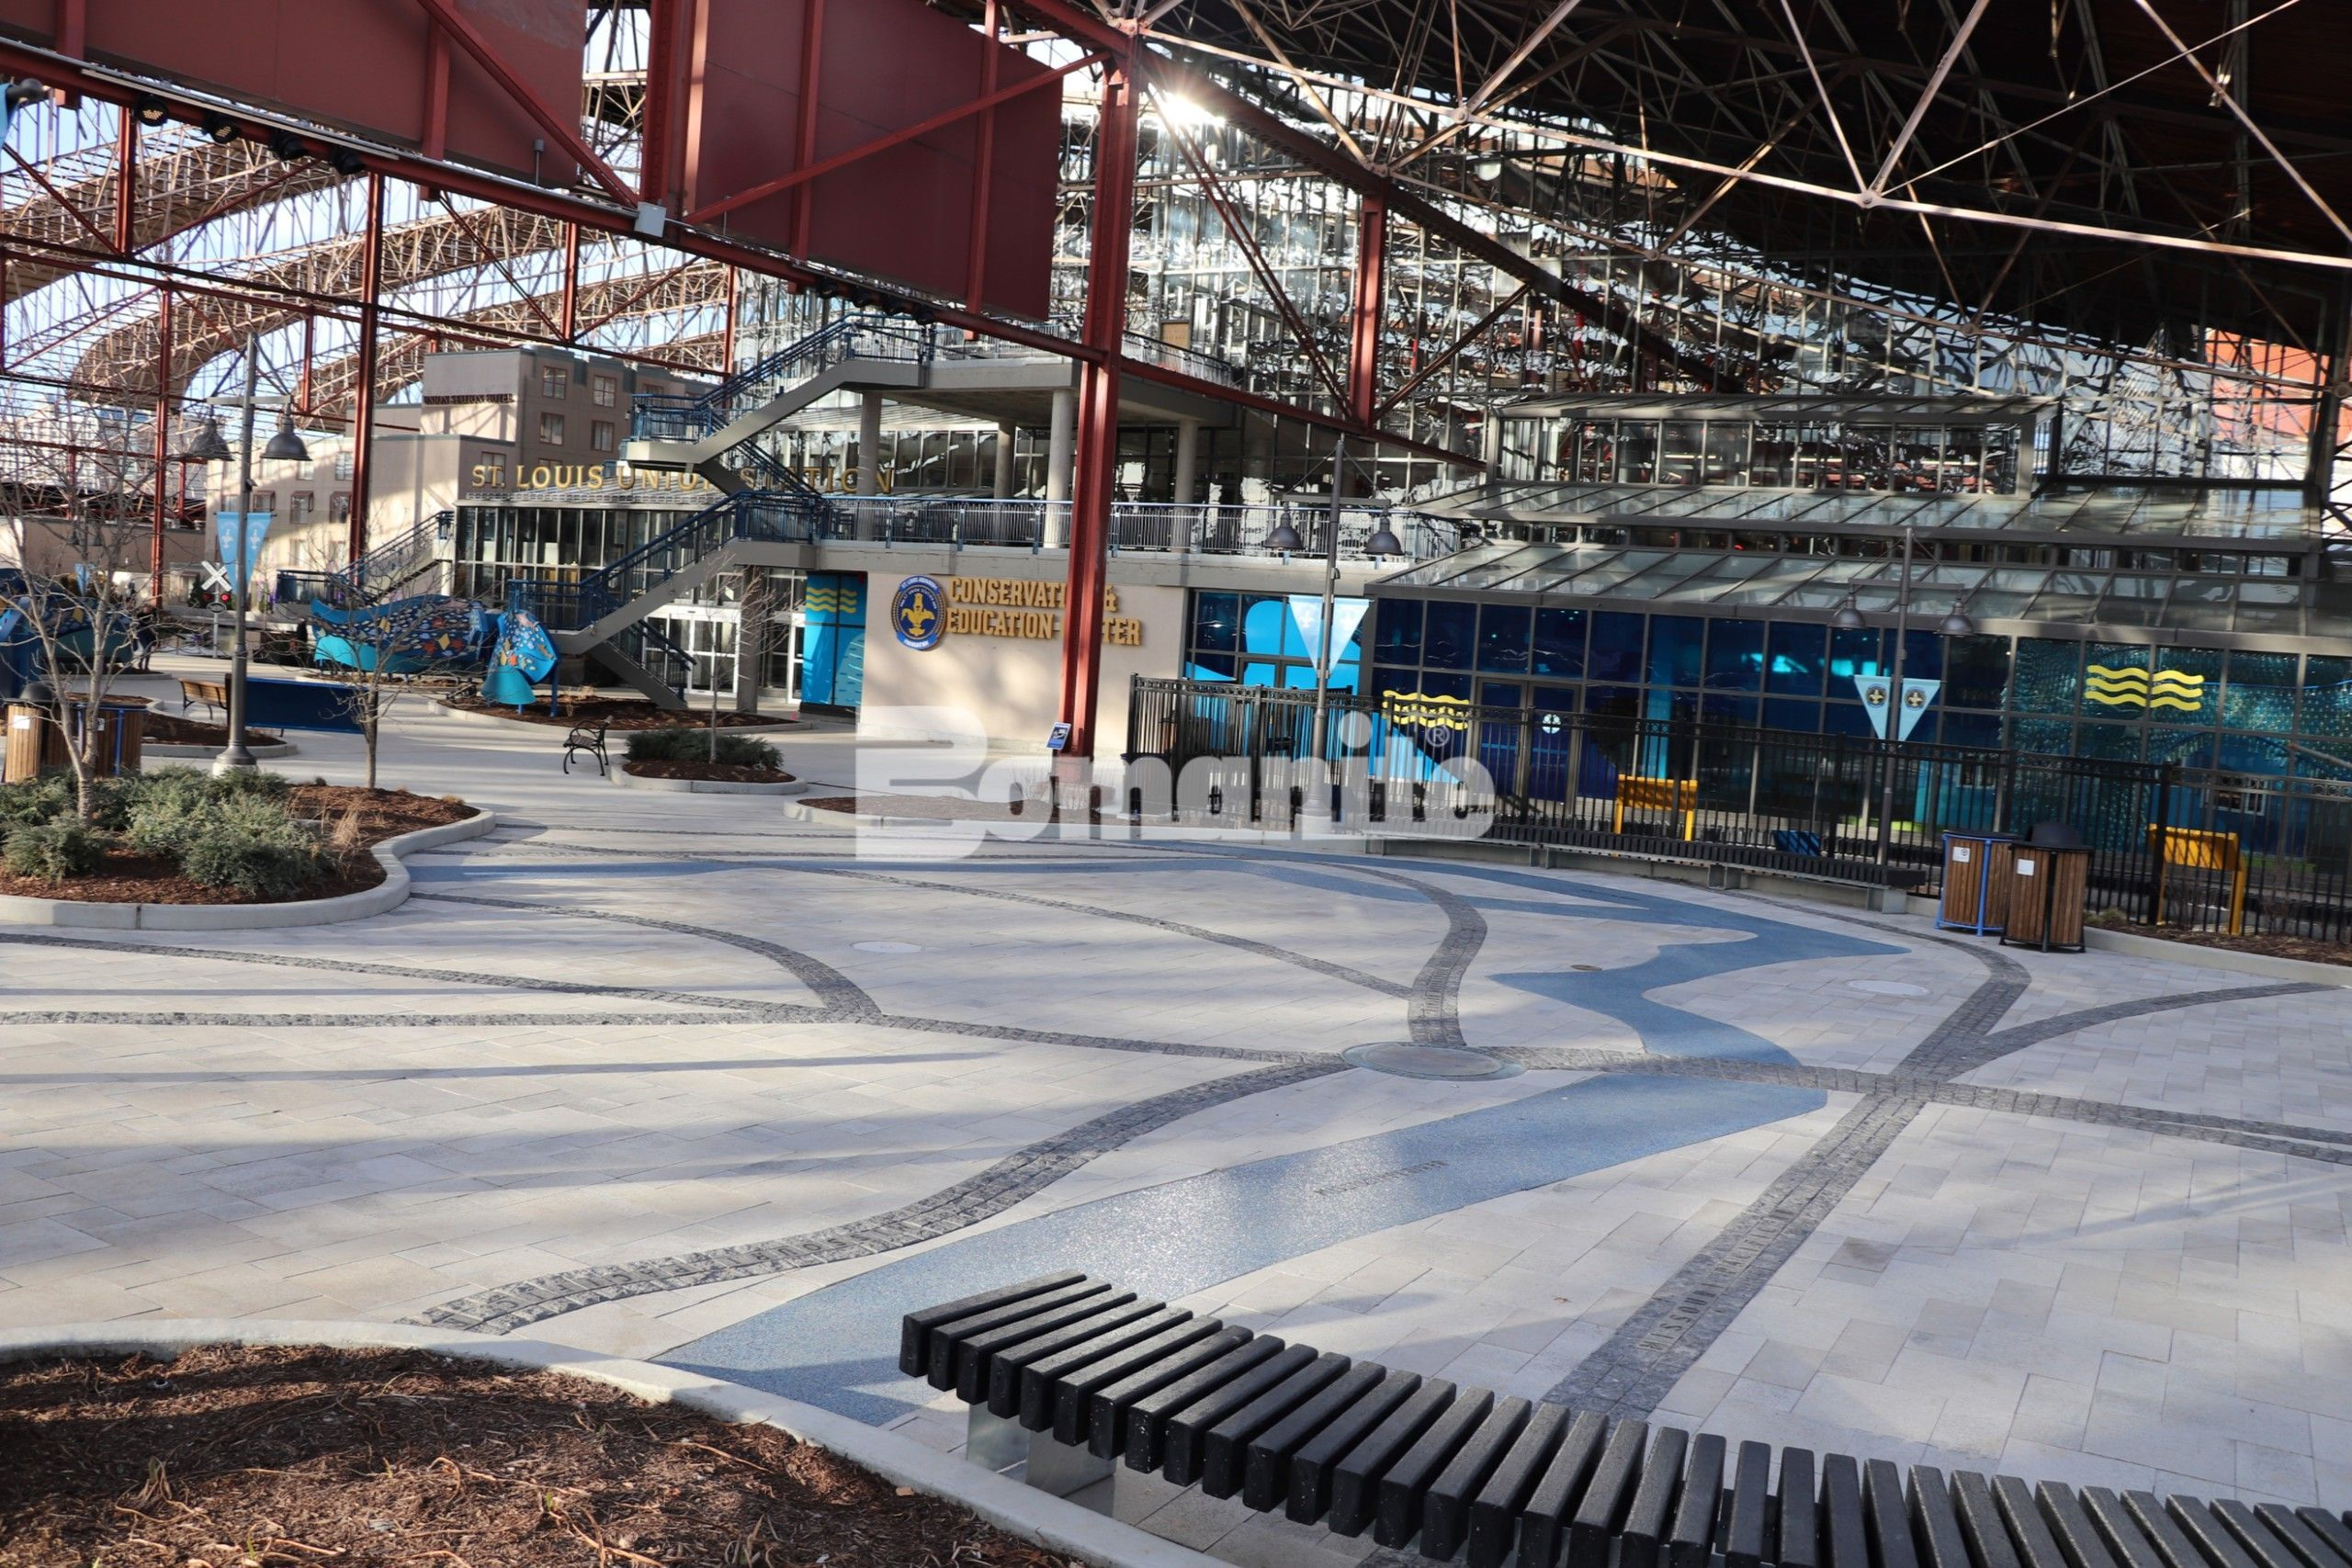 Themed Entry Way of St. Louis Aquarium at Union Station Creates River of Glass with Bomanite Revealed Exposed Aggregate for the River Confluence created by PGAV Destinations and installed by Musselman & Hall Contractors.